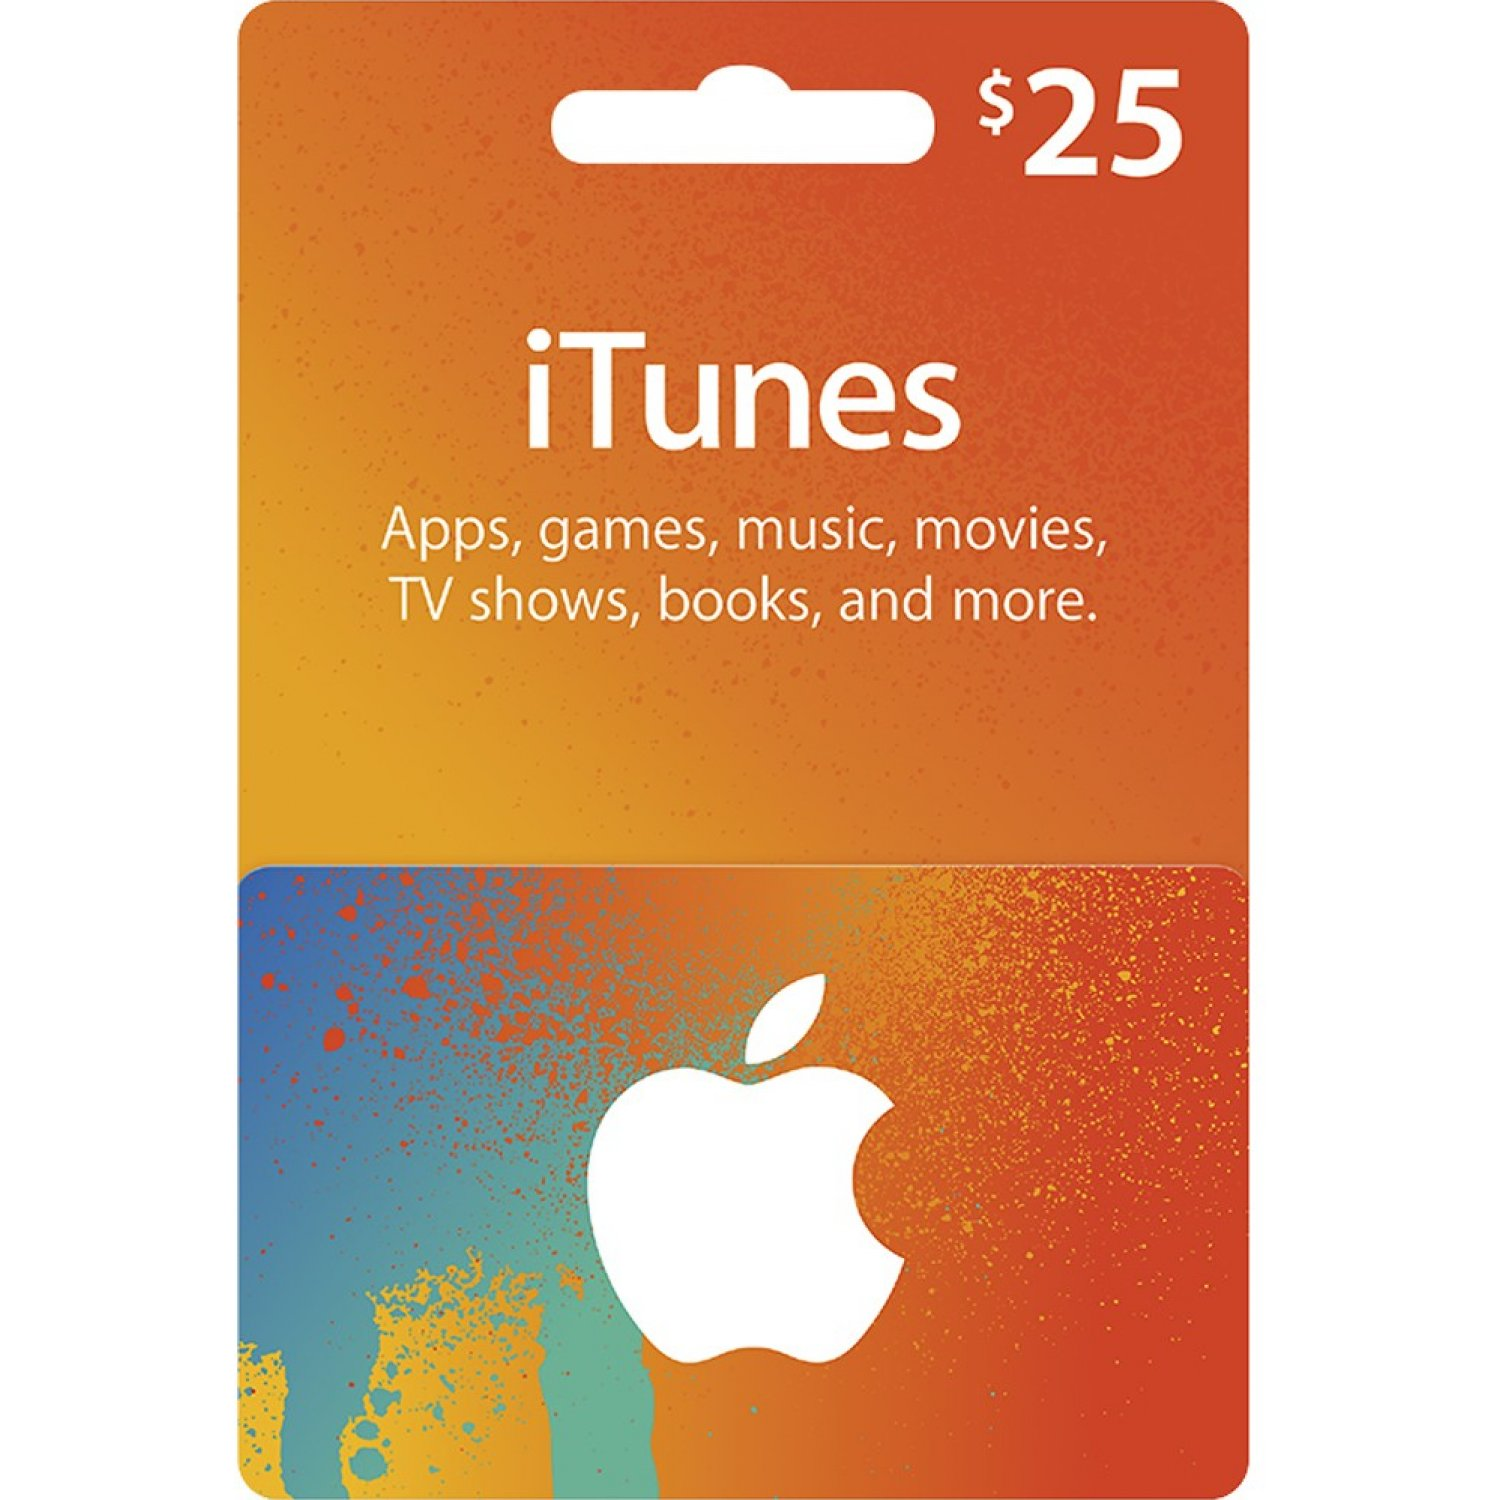 ITUNES GIFT CARD $25 USA No Time Limit - DISCOUNT